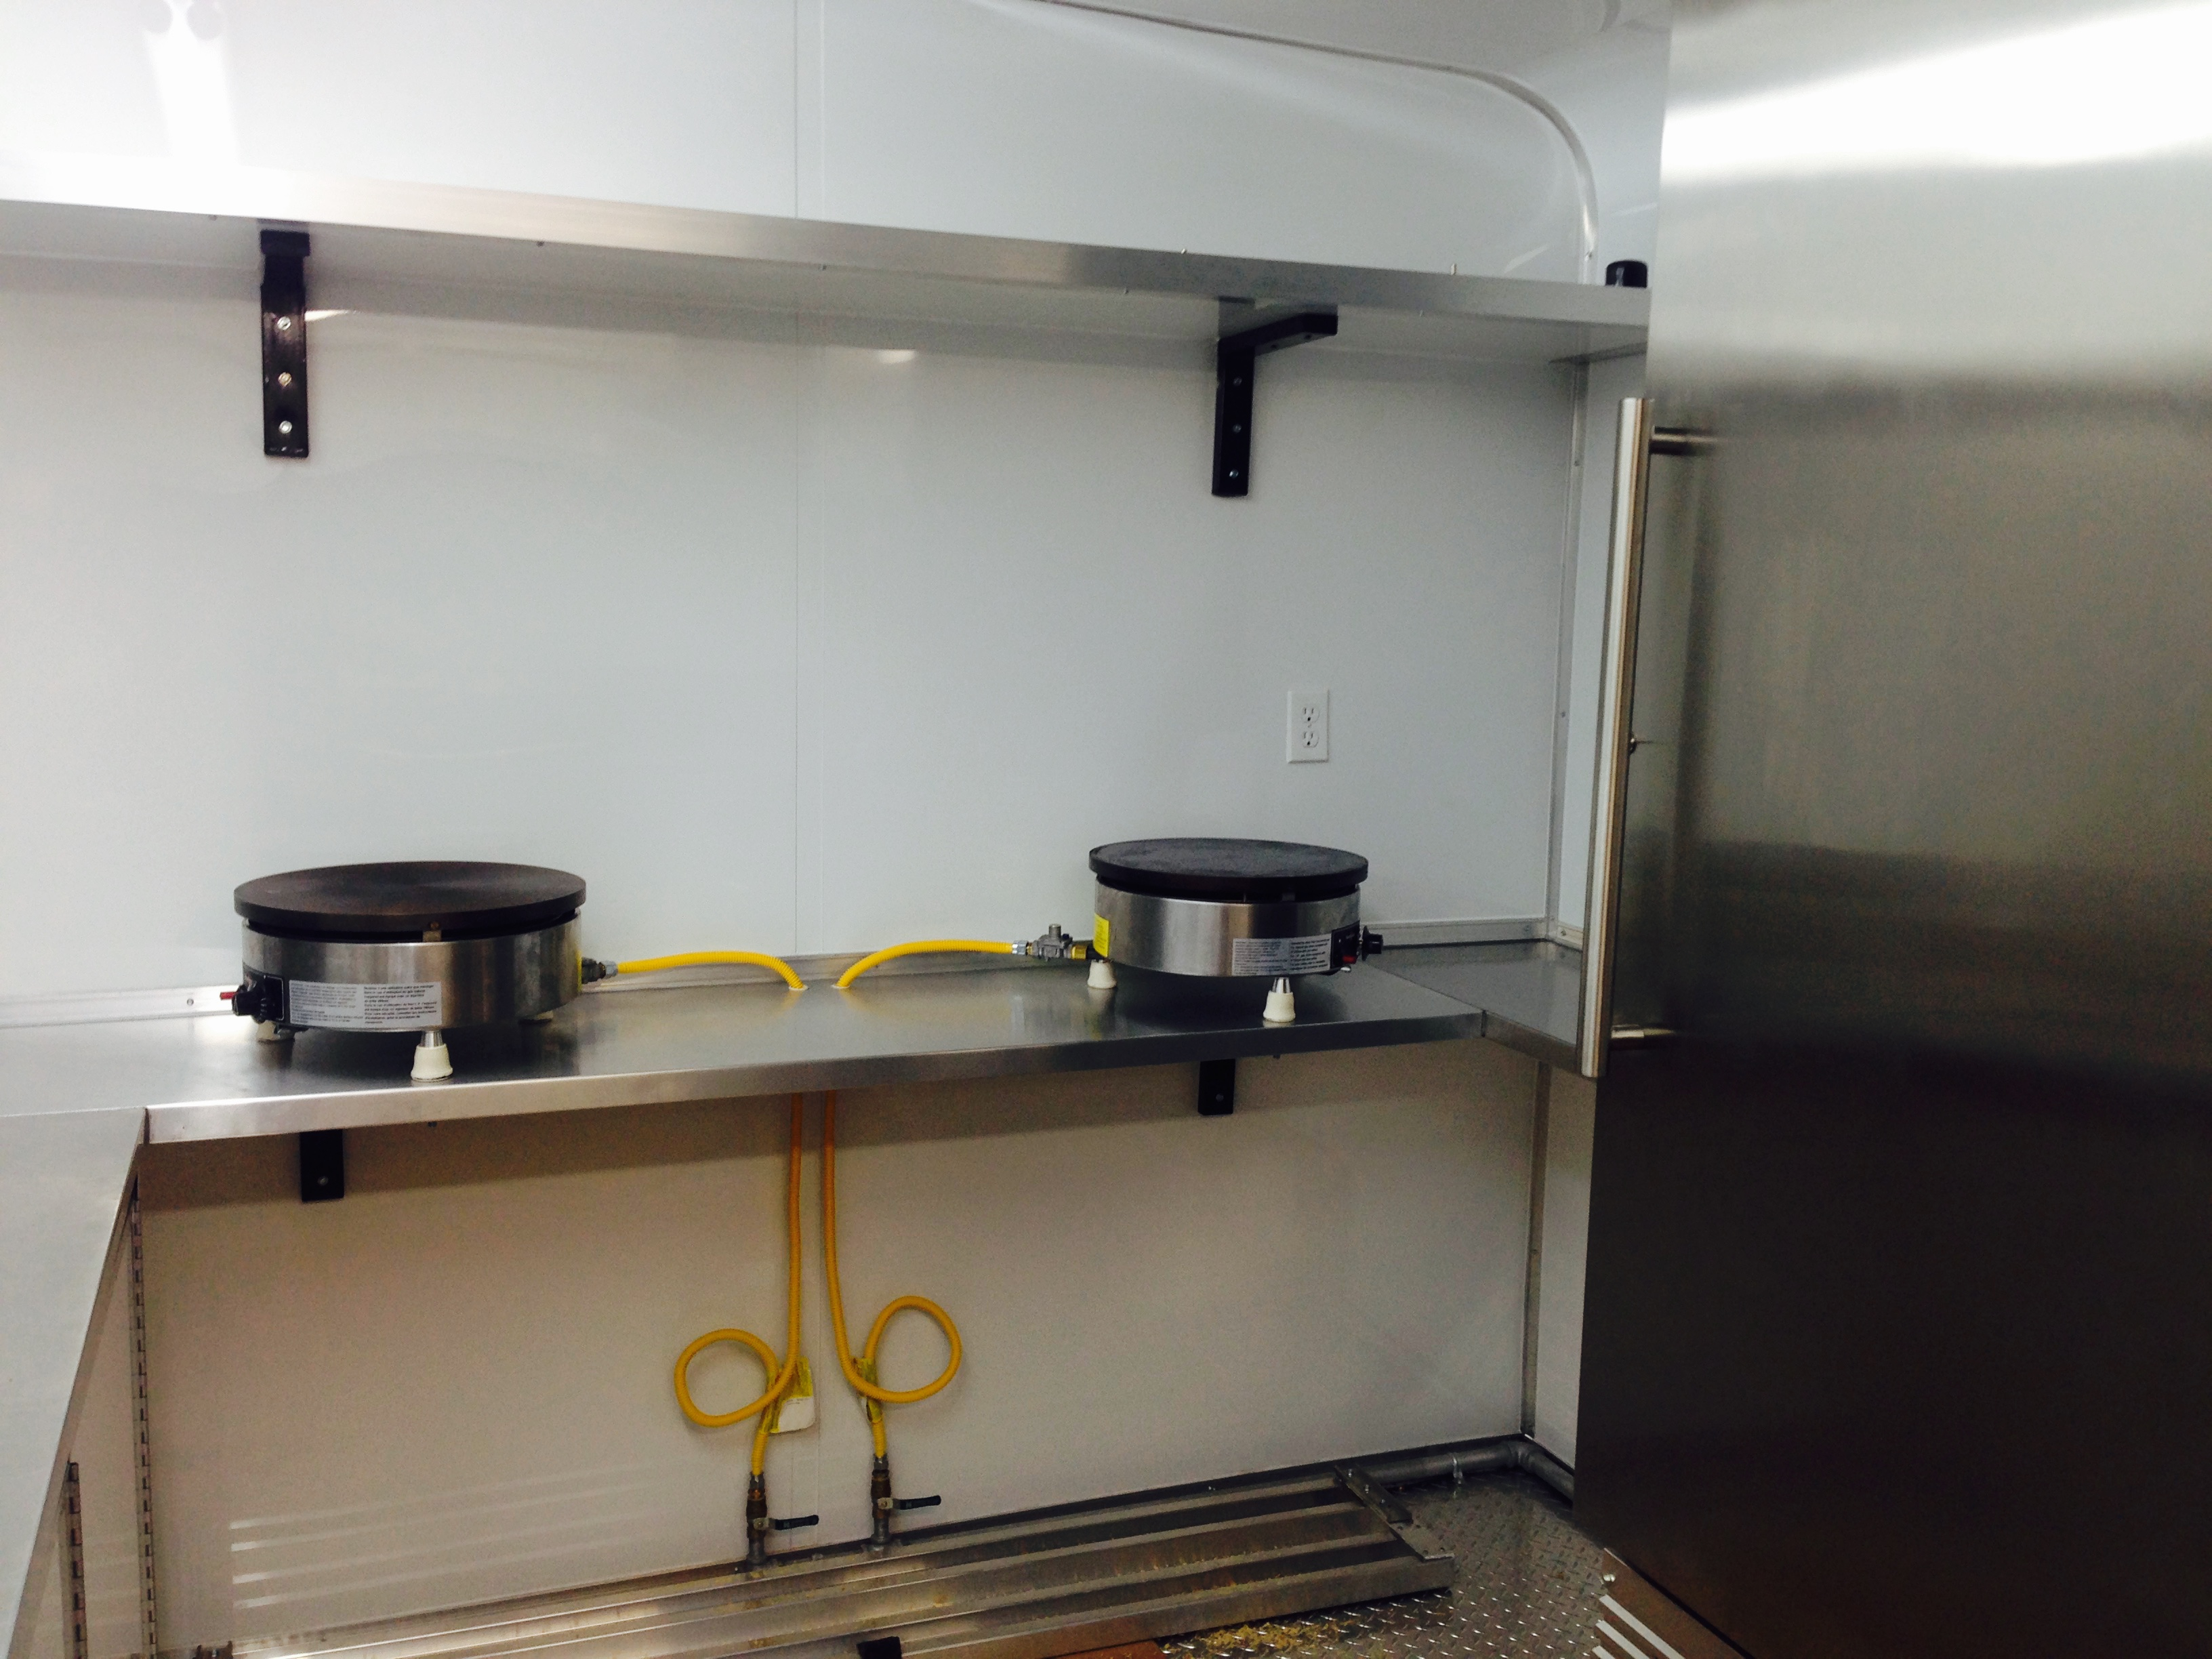 PGC Concession Trailer for sale 4